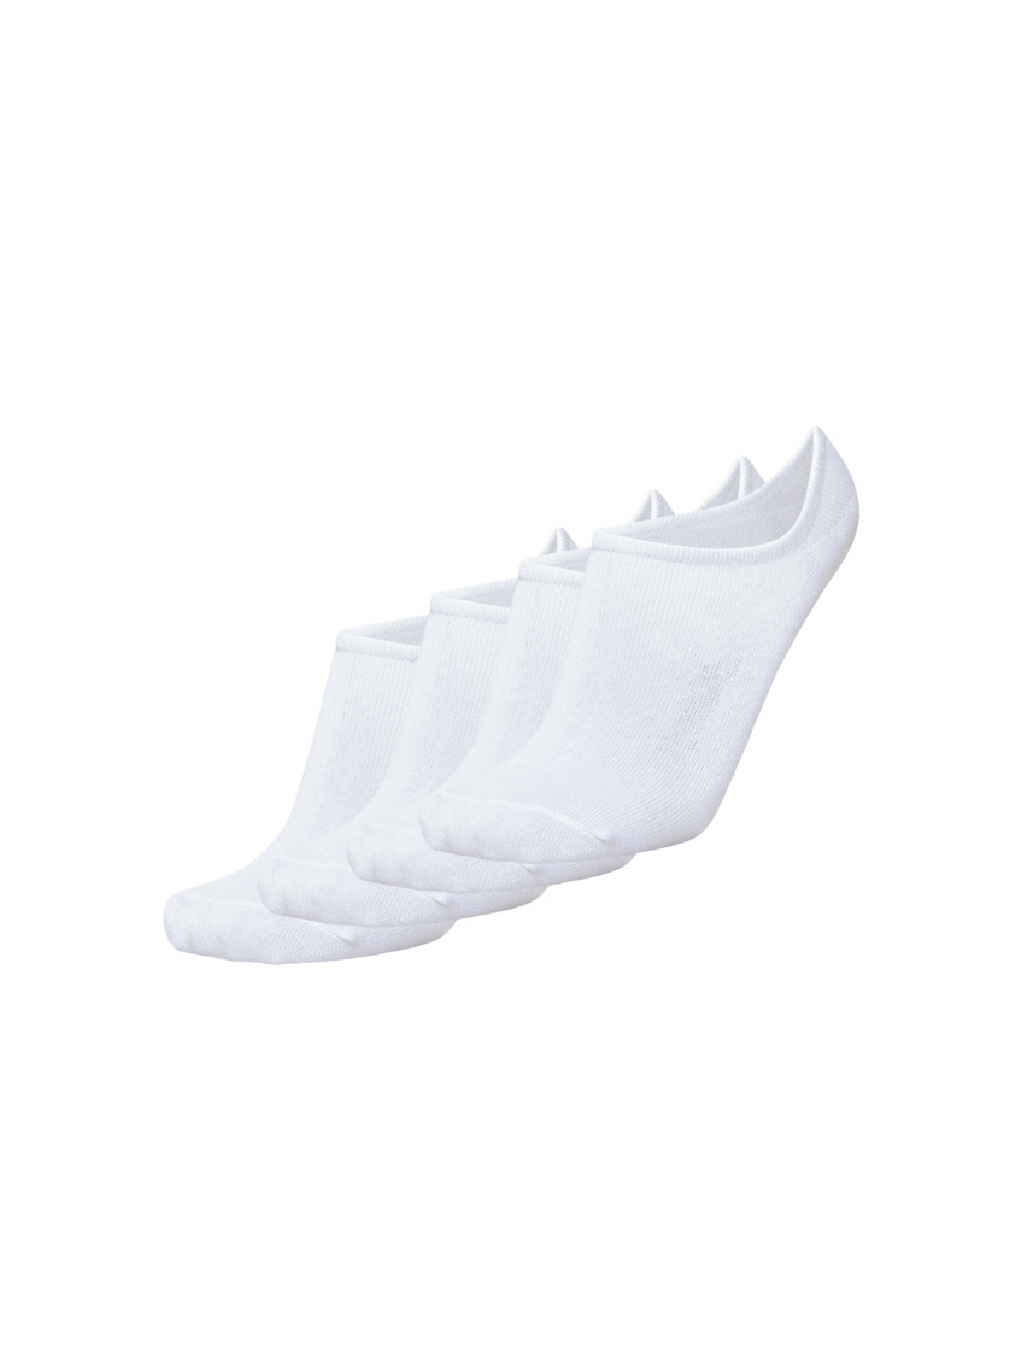 Neak Sock 4 Pack - White